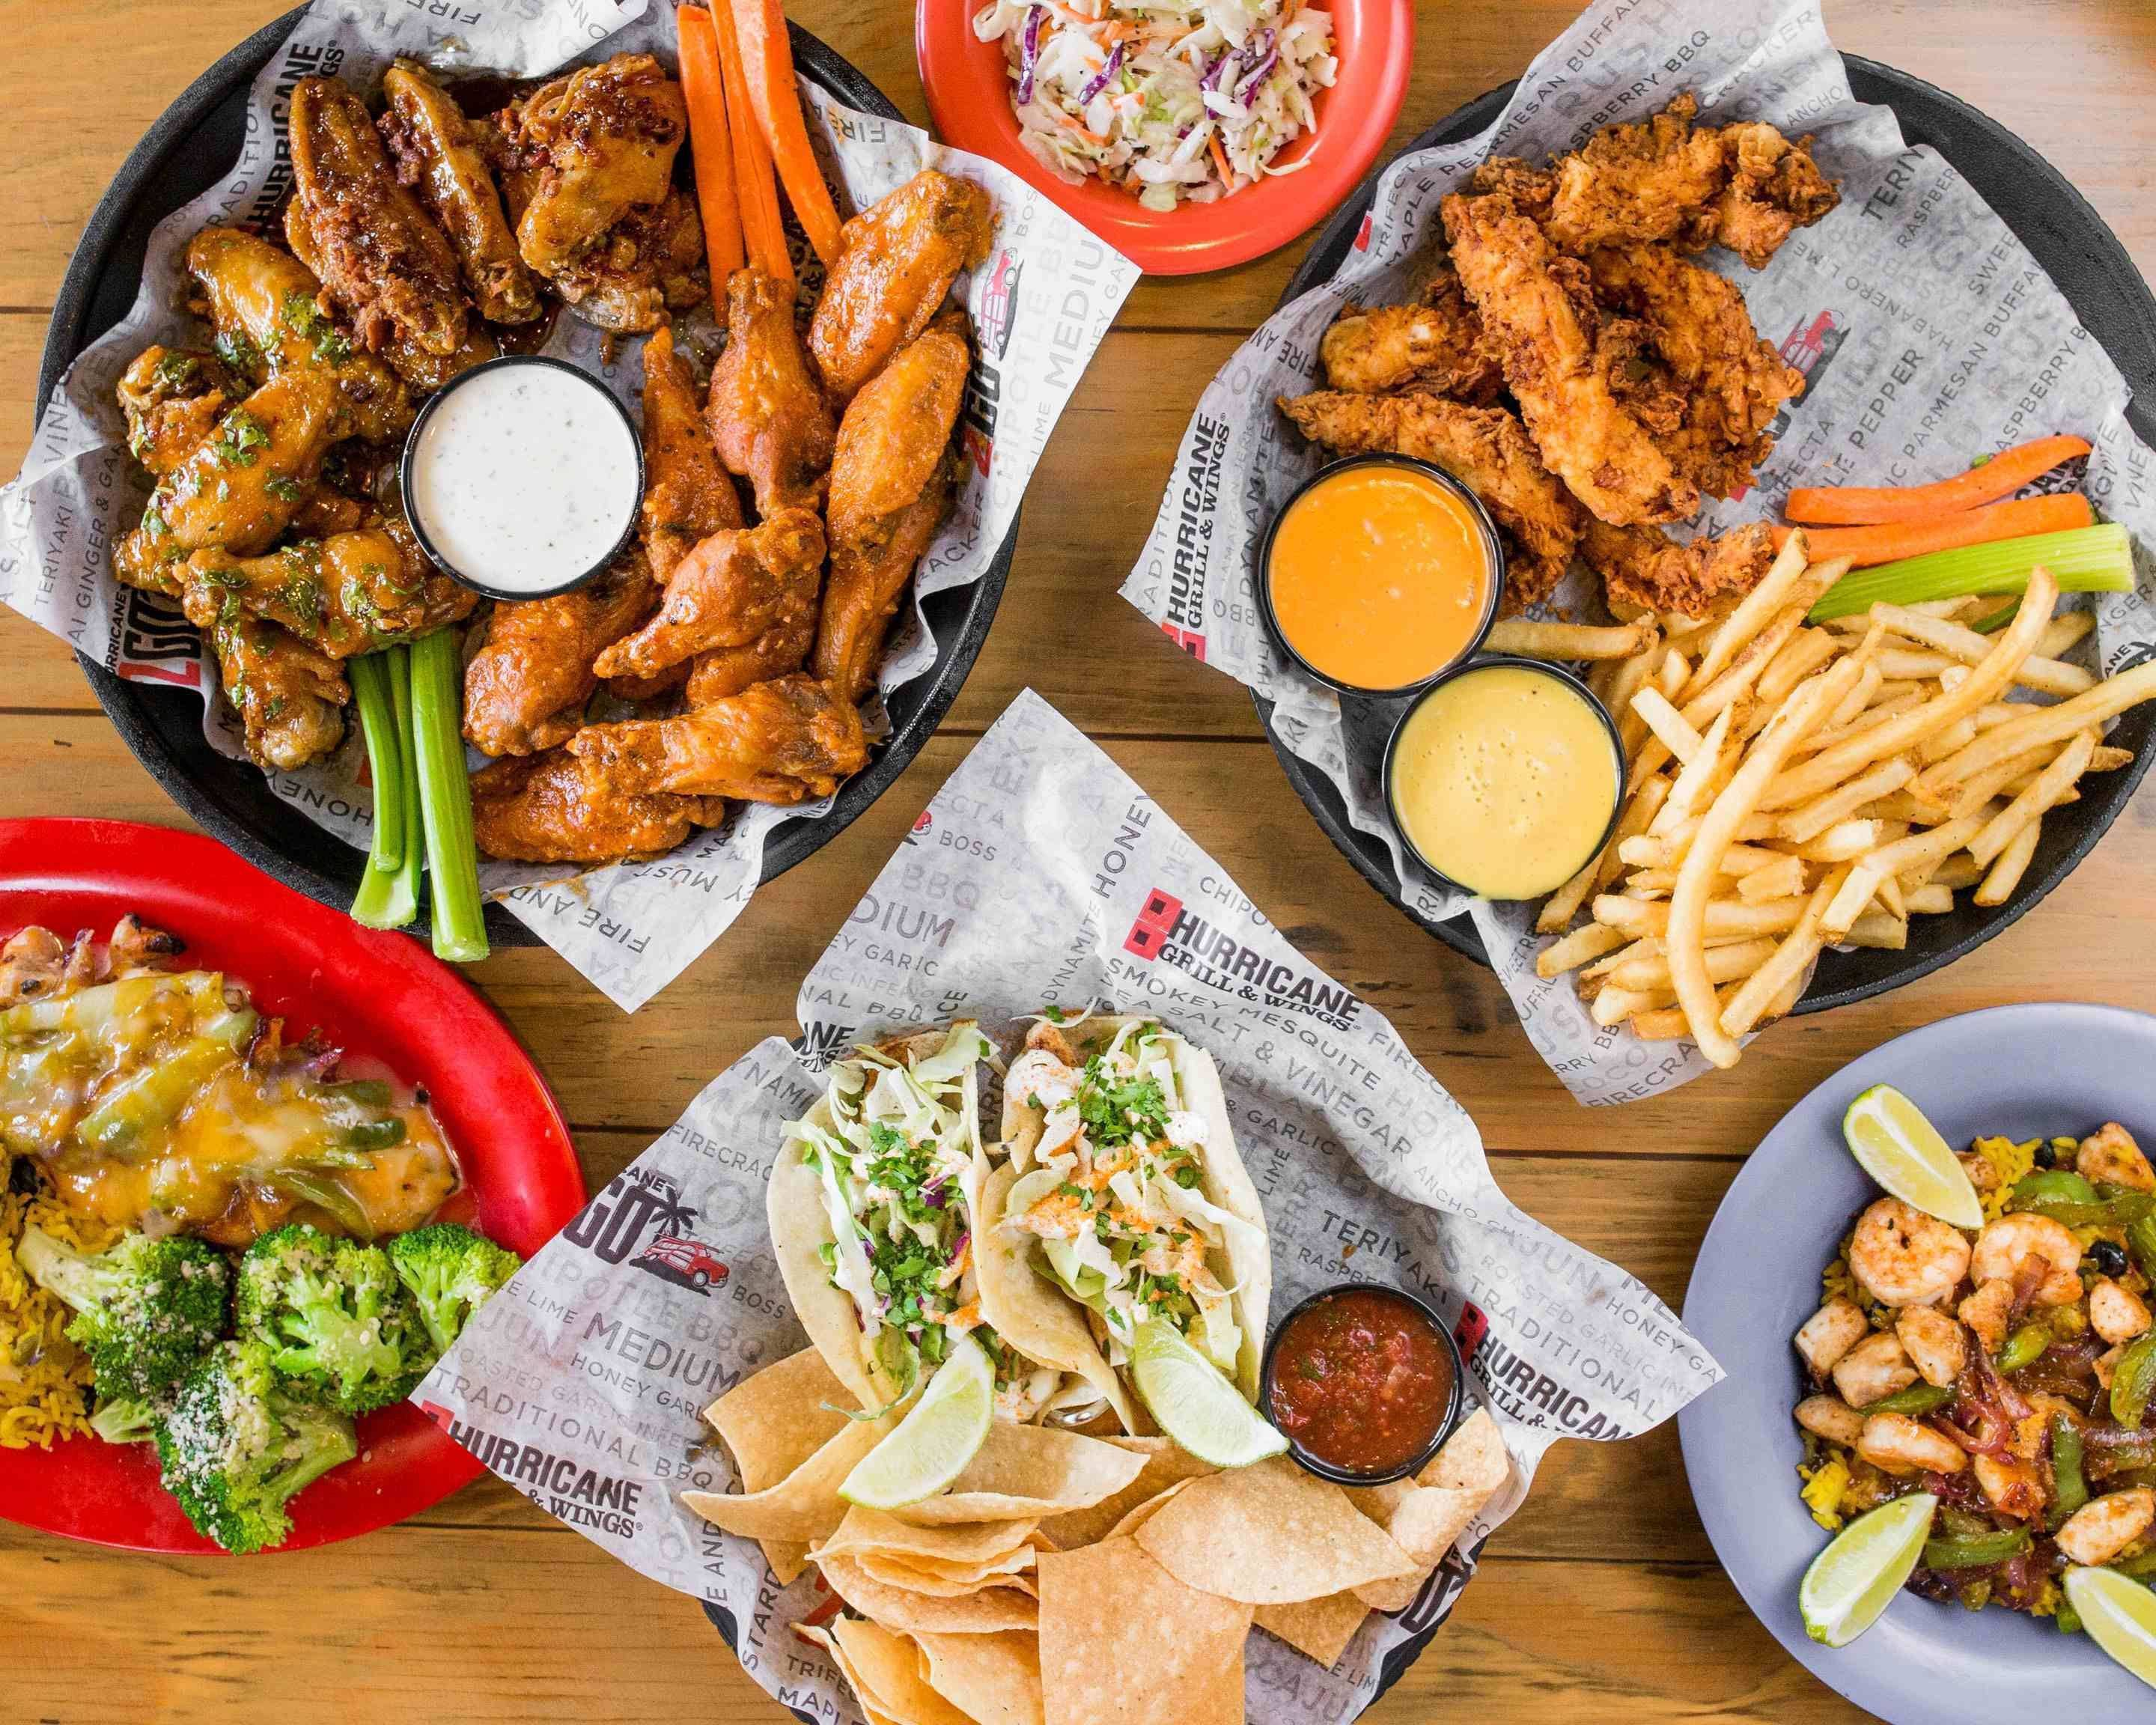 Hurricane Wings Palm Beach Gardens Menu